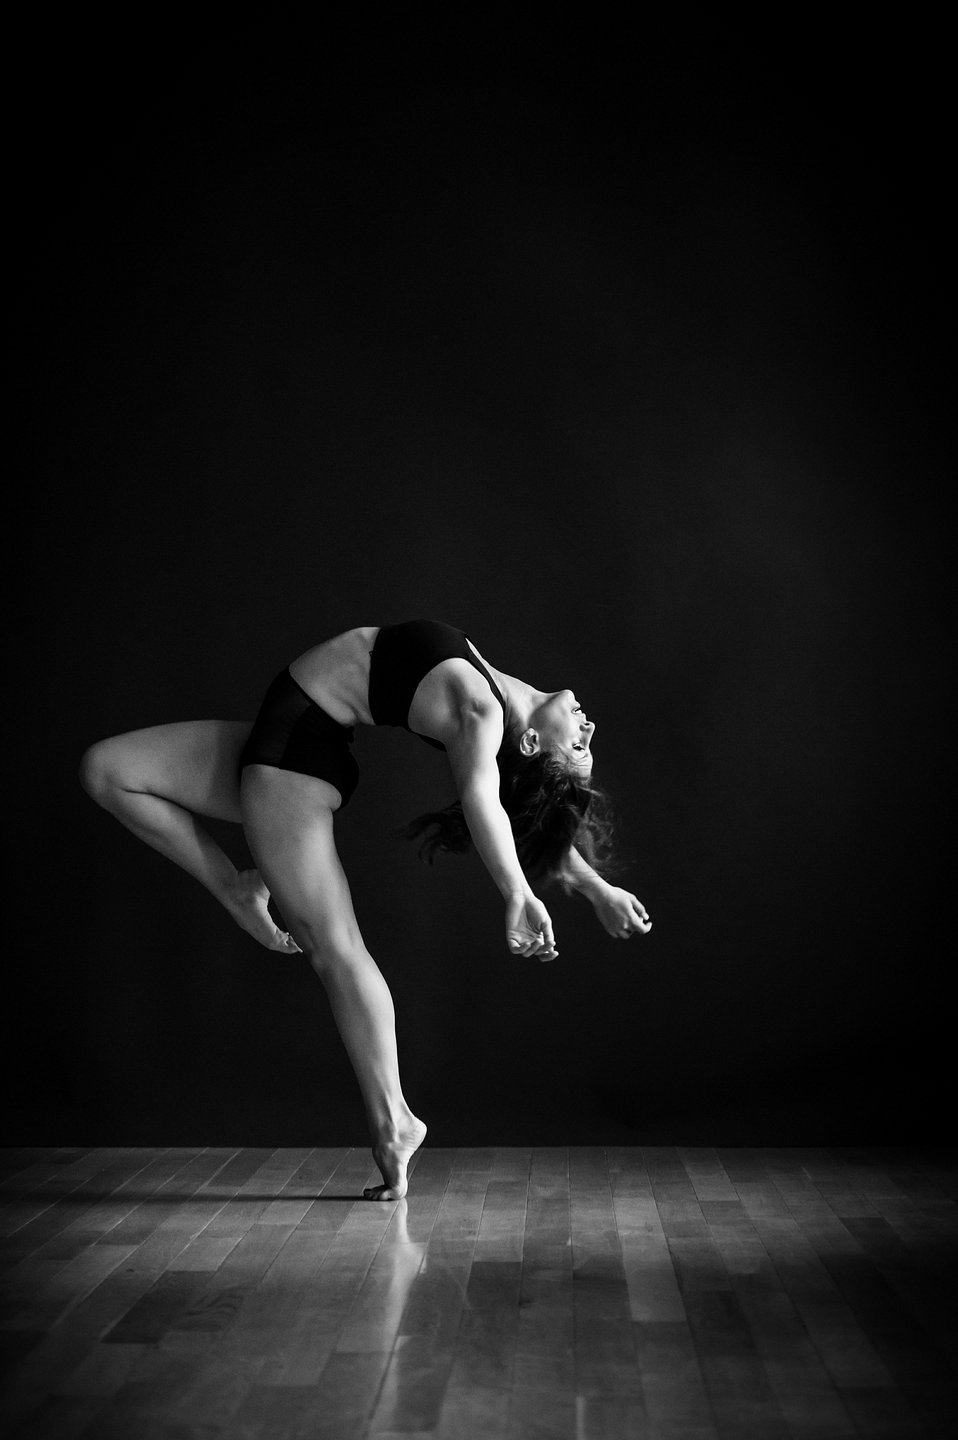 Los Angeles Dance Portrait Photo - Stephanie Abrams - by Tommy Xing Photography 06.jpg